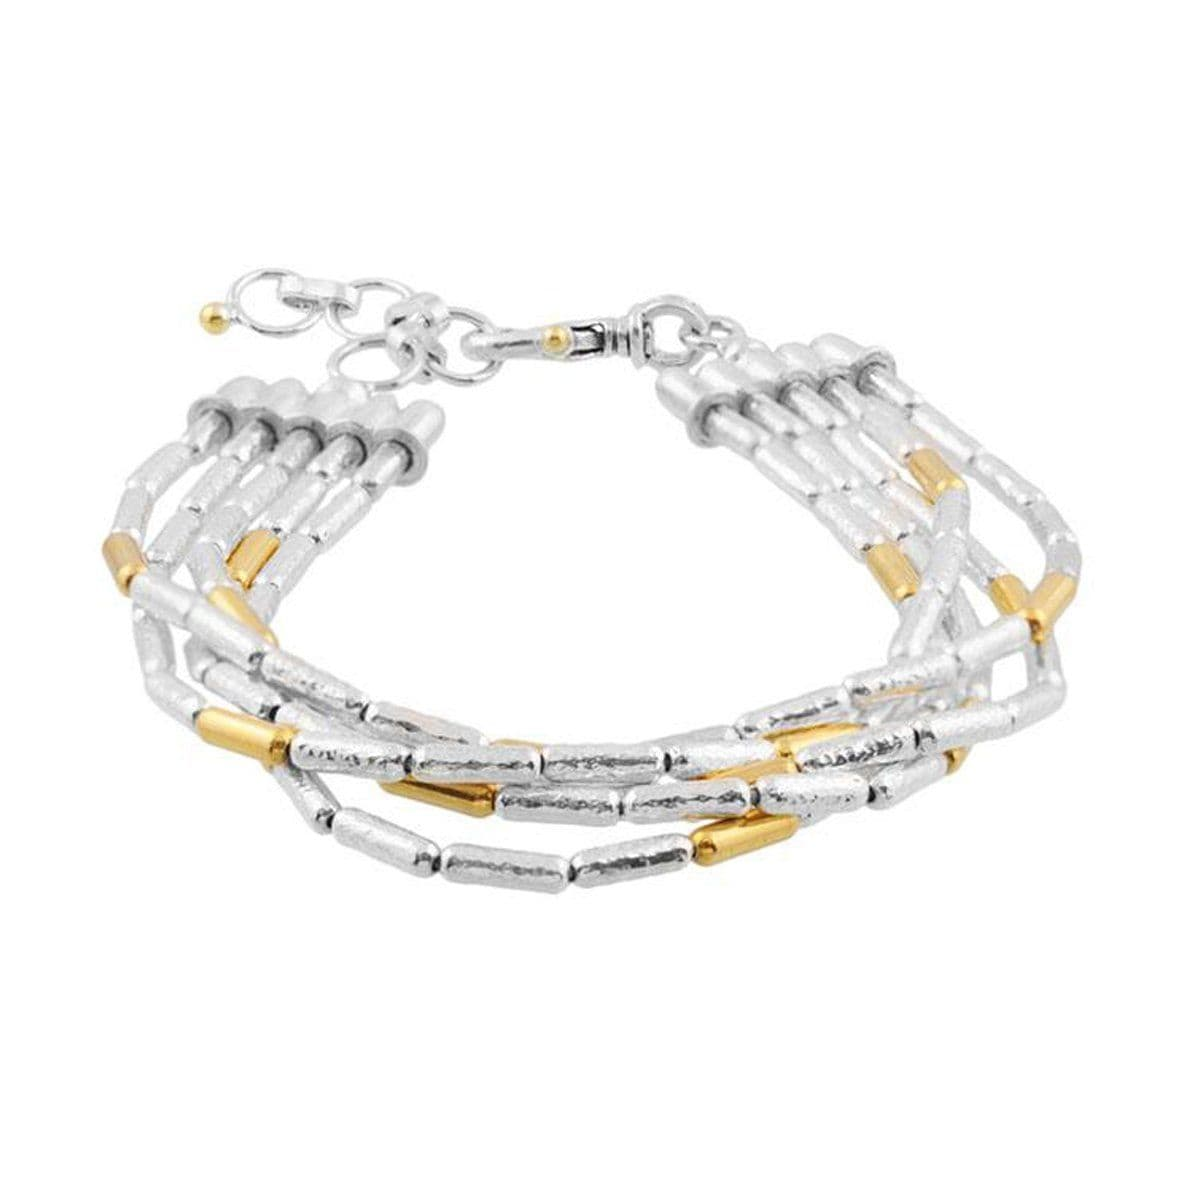 Layered Gold Bracelet  - SVB5-XS-15G-7